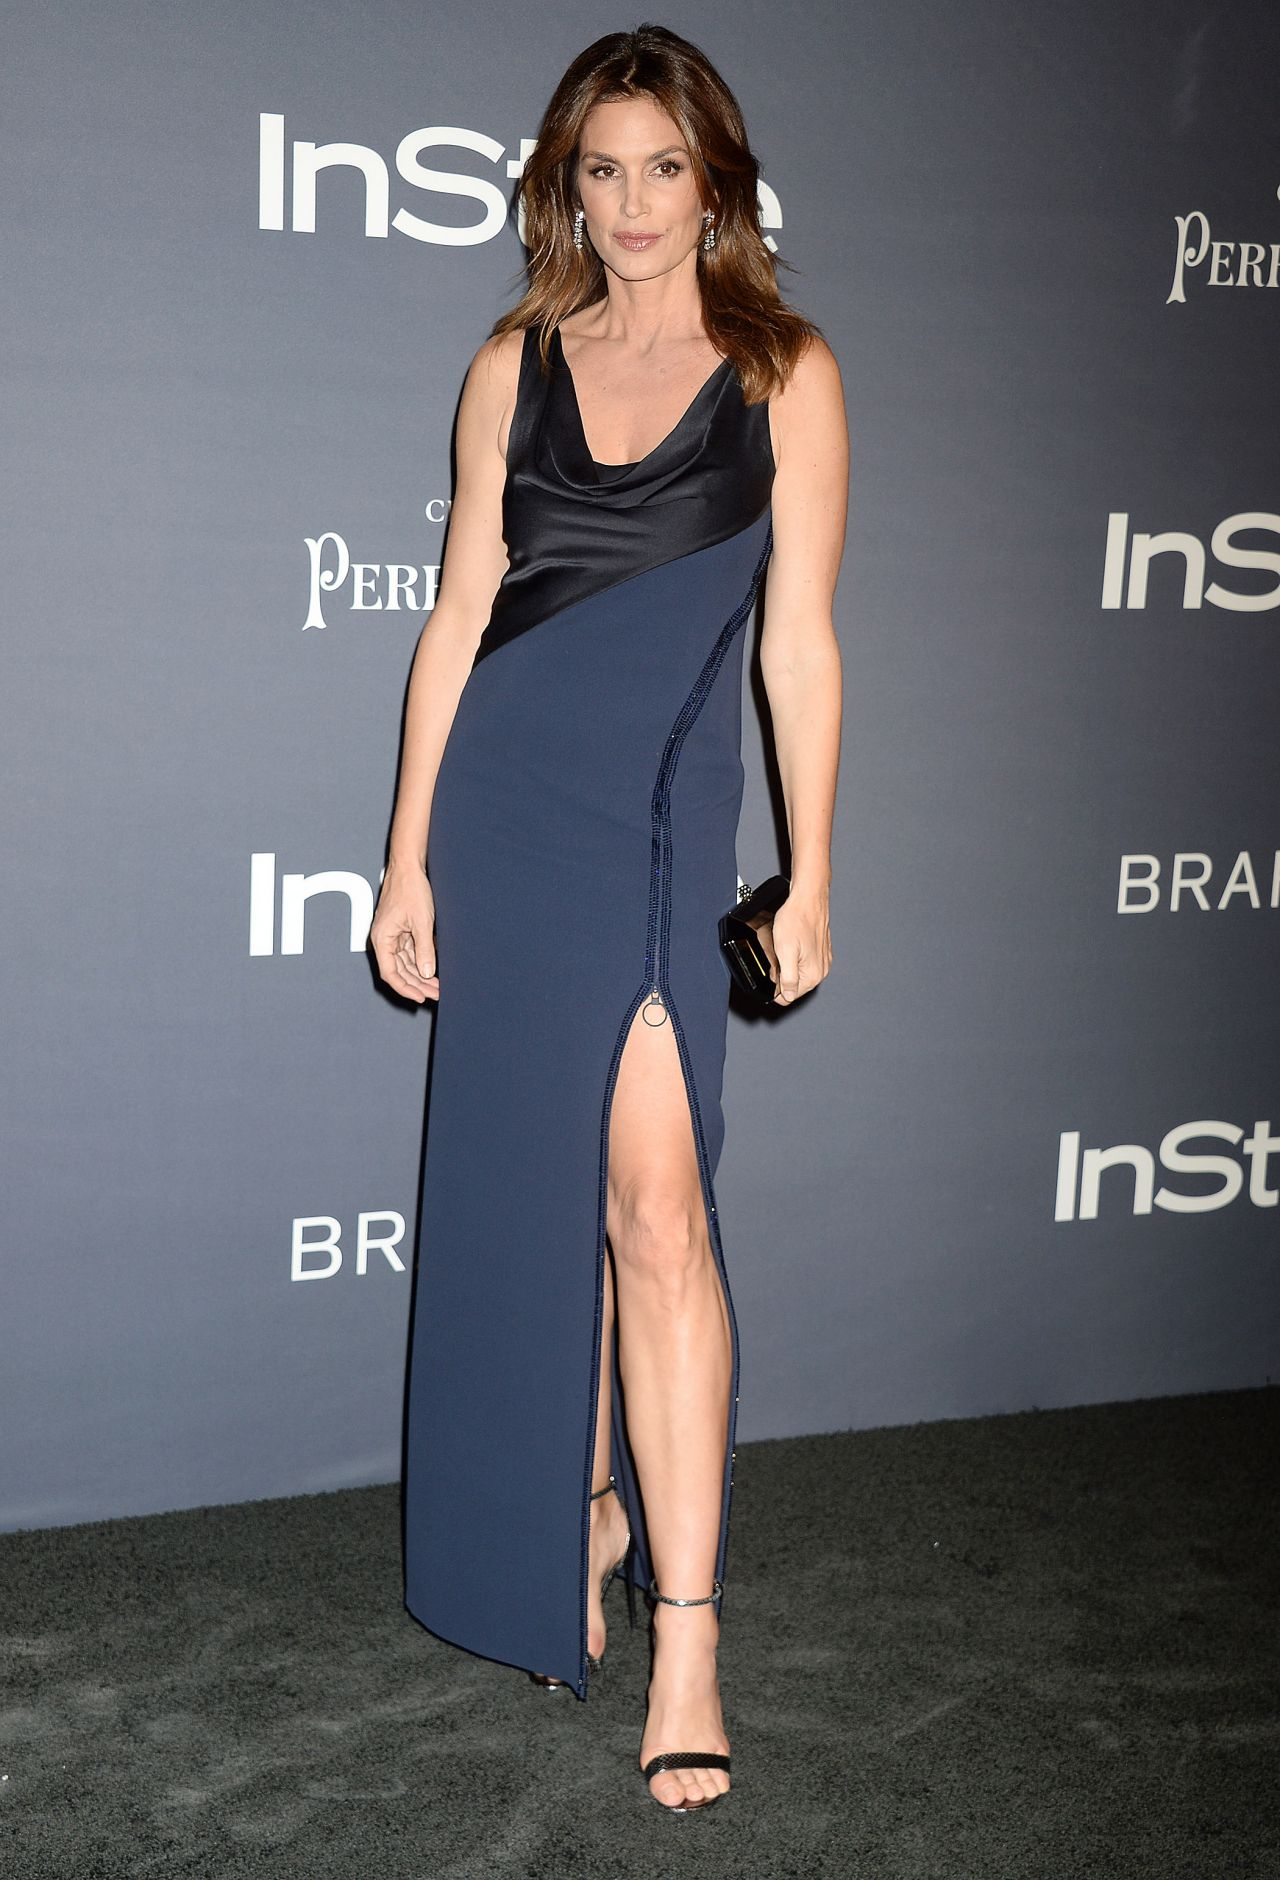 Cindy Crawford Instyle Awards 2017 In Los Angeles